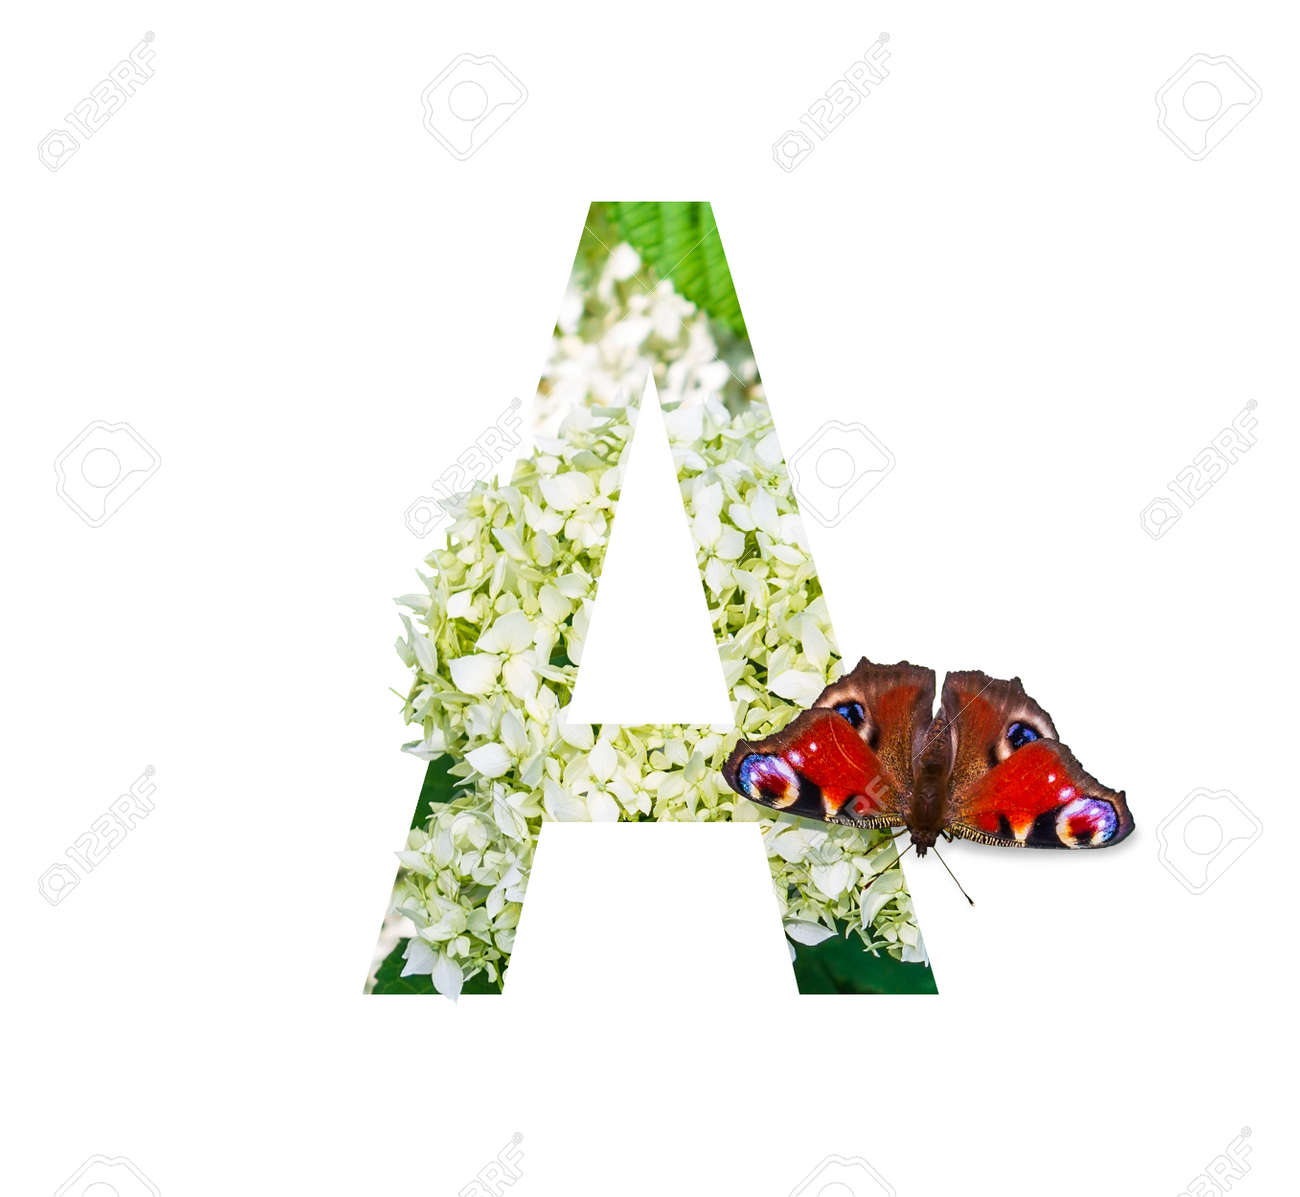 letter A of the floral alphabet with a peacock eye butterfly on a blooming white hydrangea isolated on a white background - 165573733